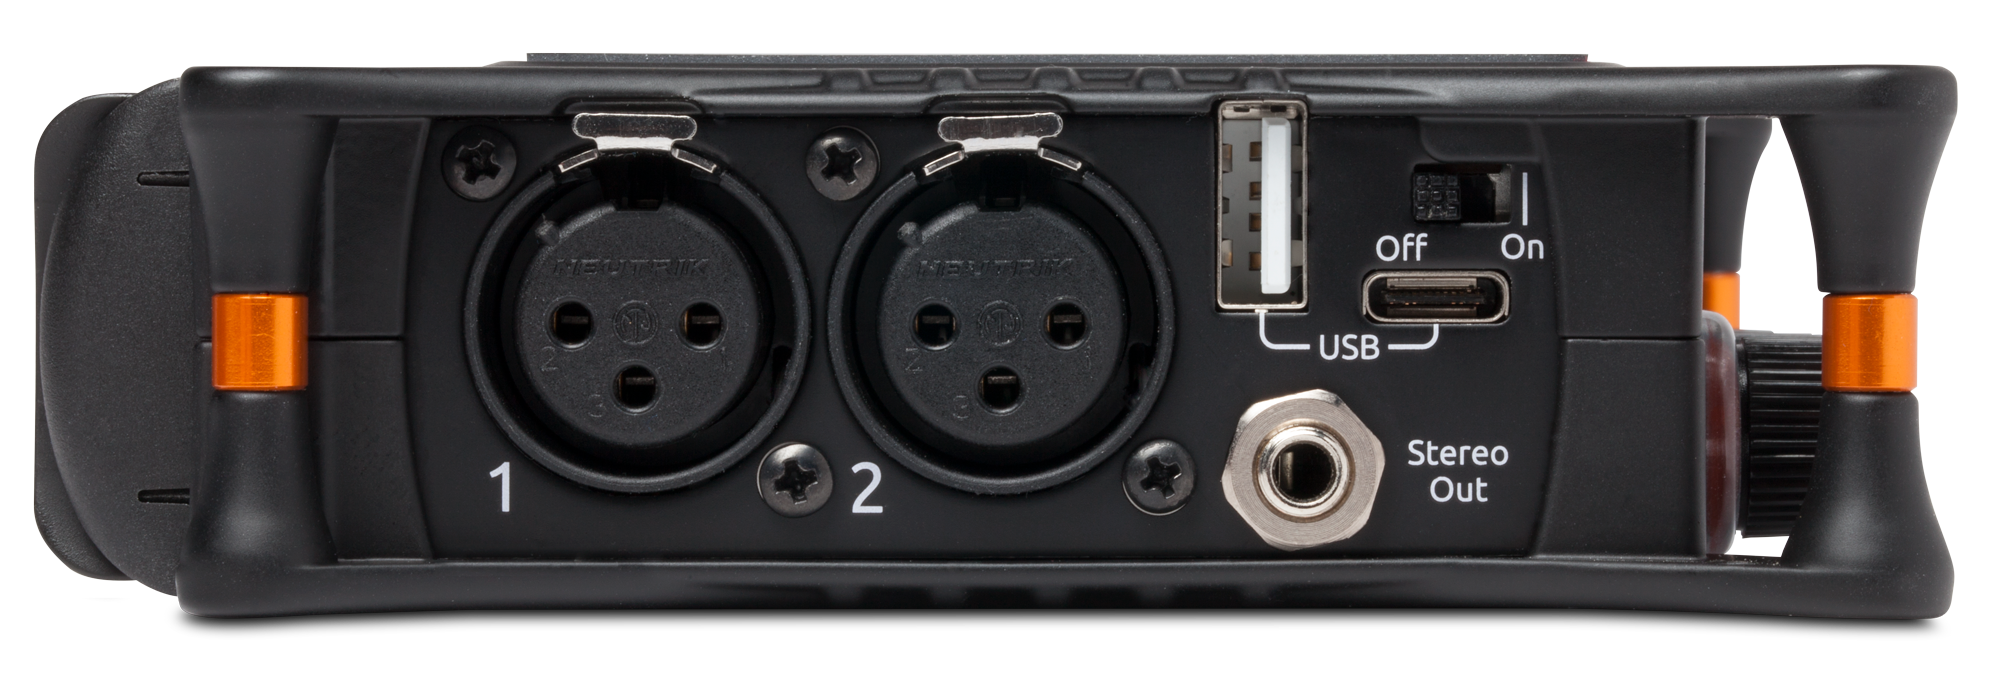 Review: MixPre-3 audio recorder/mixer from Sound Devices by